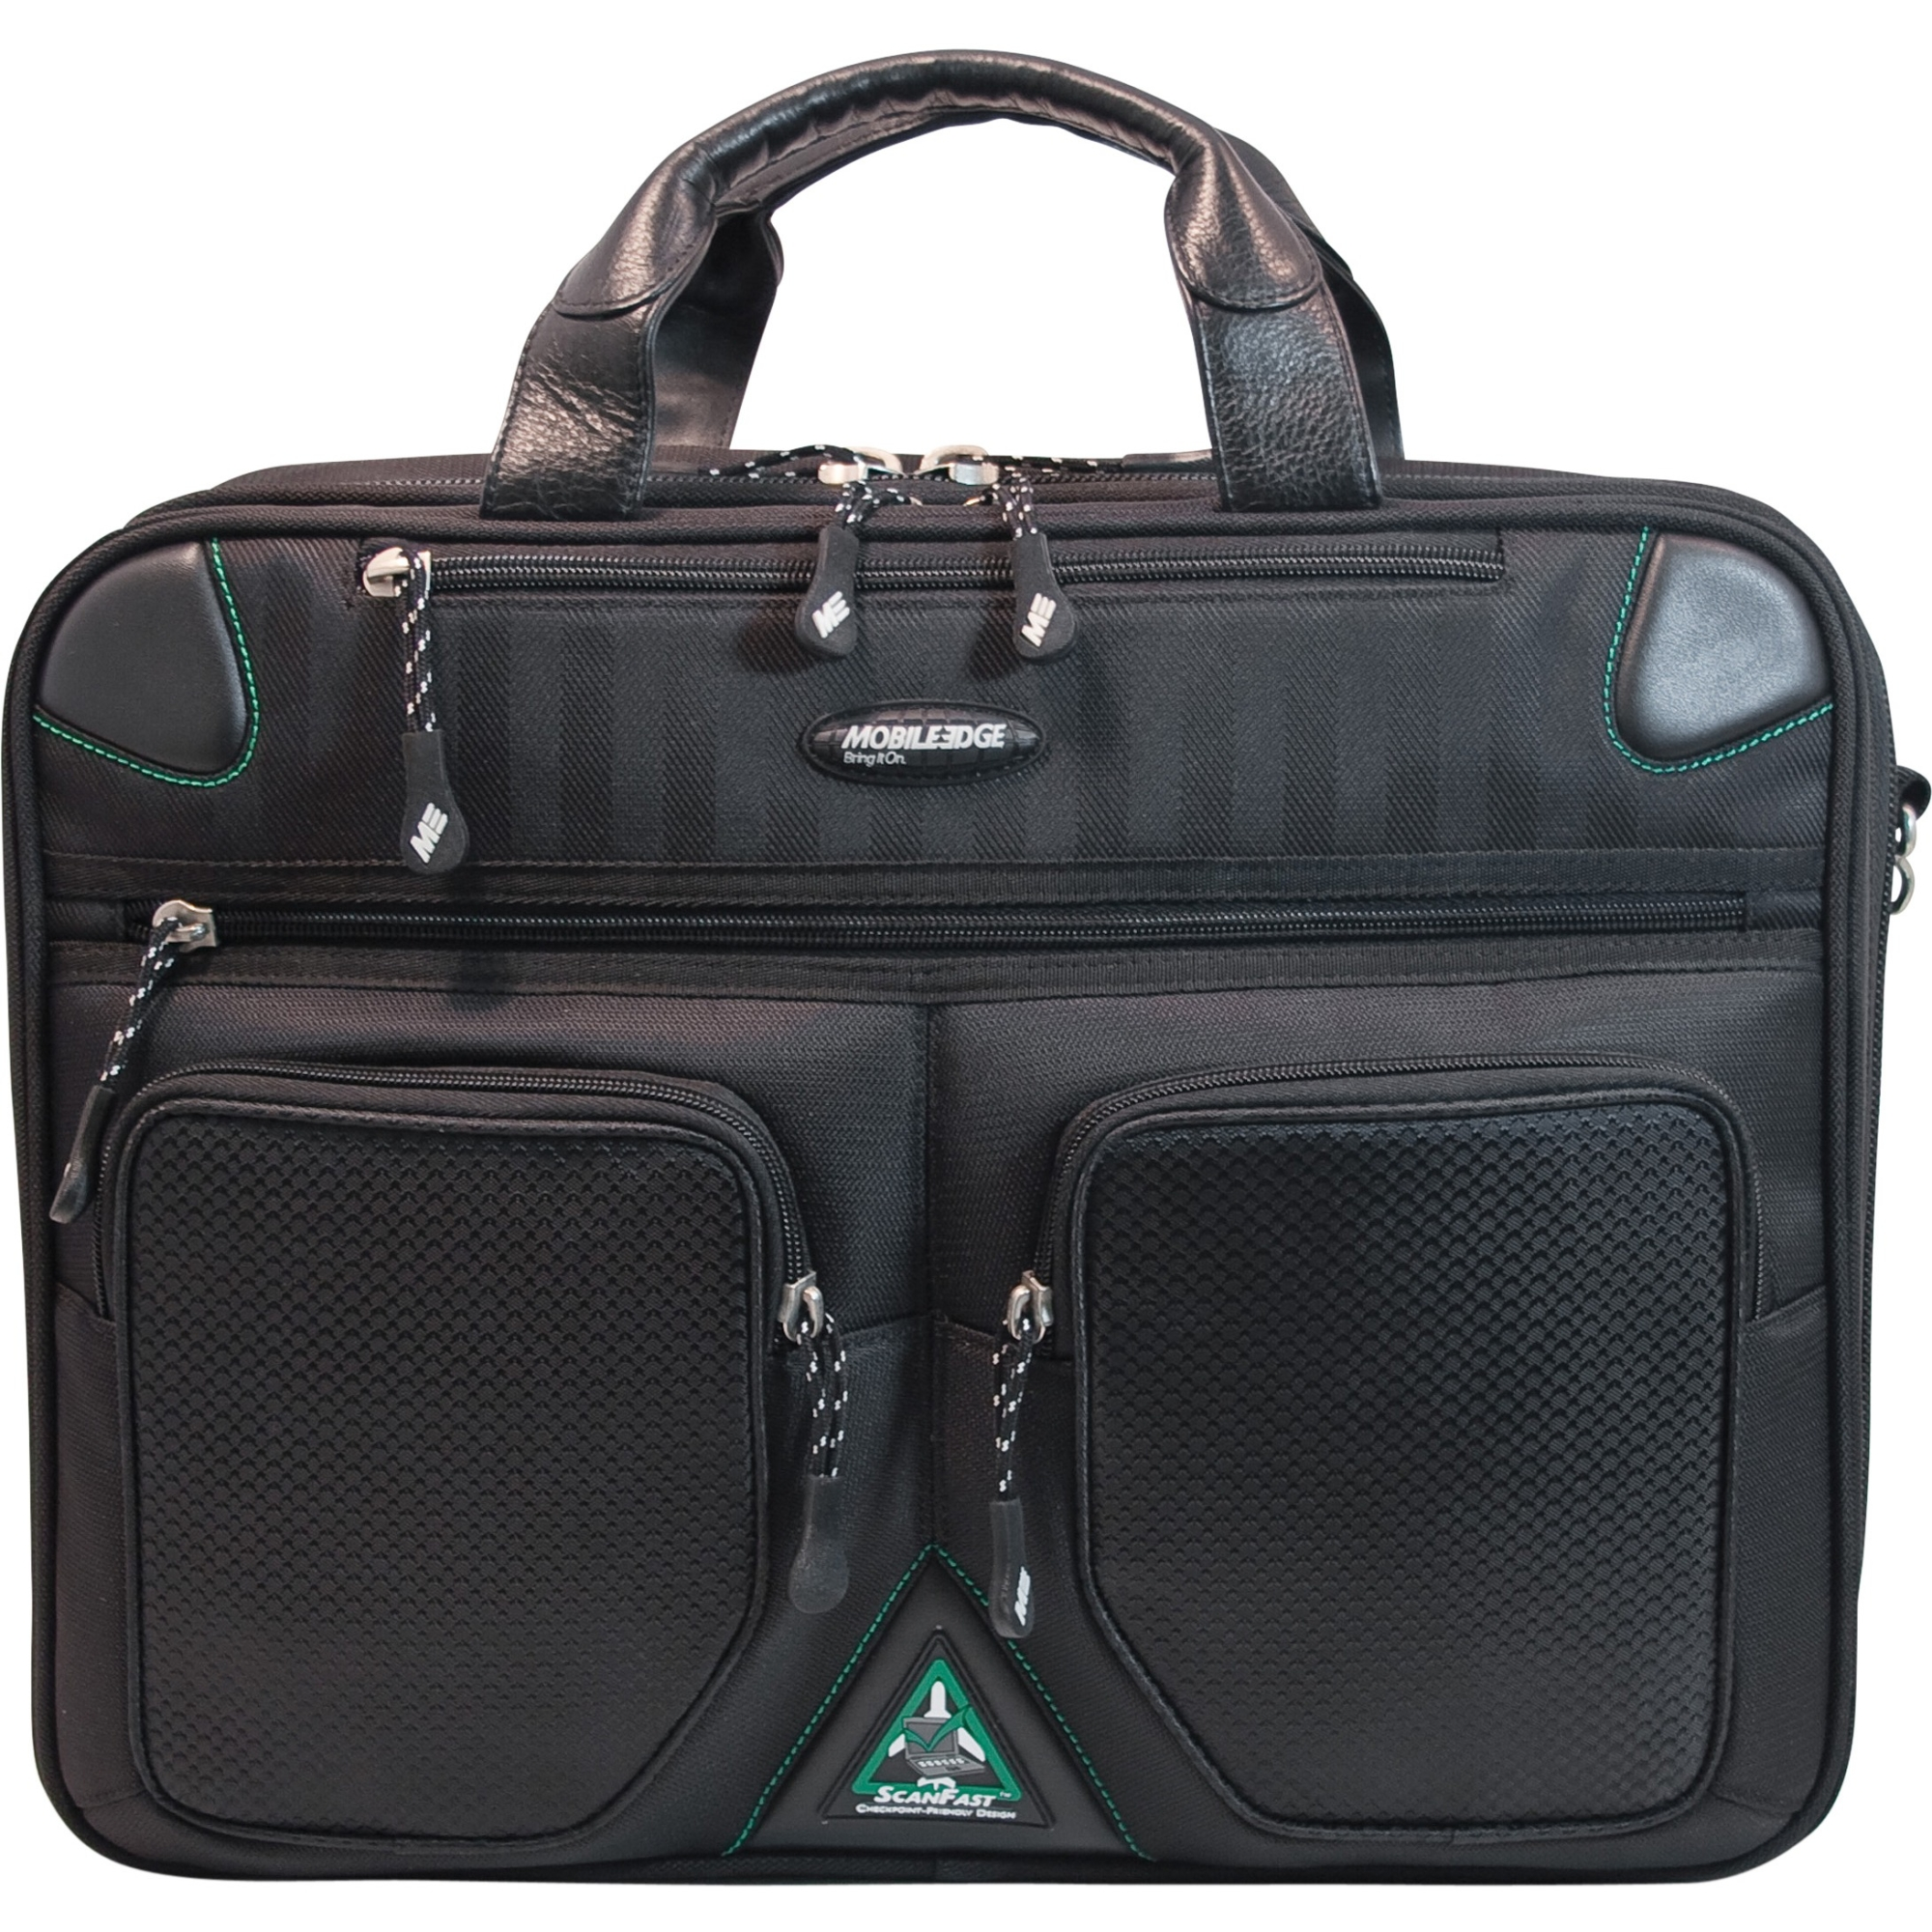 Edge ScanFast Checkpoint Friendly Briefcase 2.0 - Briefcase - Shoulder Strap - 16 inch to 17 inch Screen Support - 13.3 inch x 17 inch x 5 inch - Sorona - Black